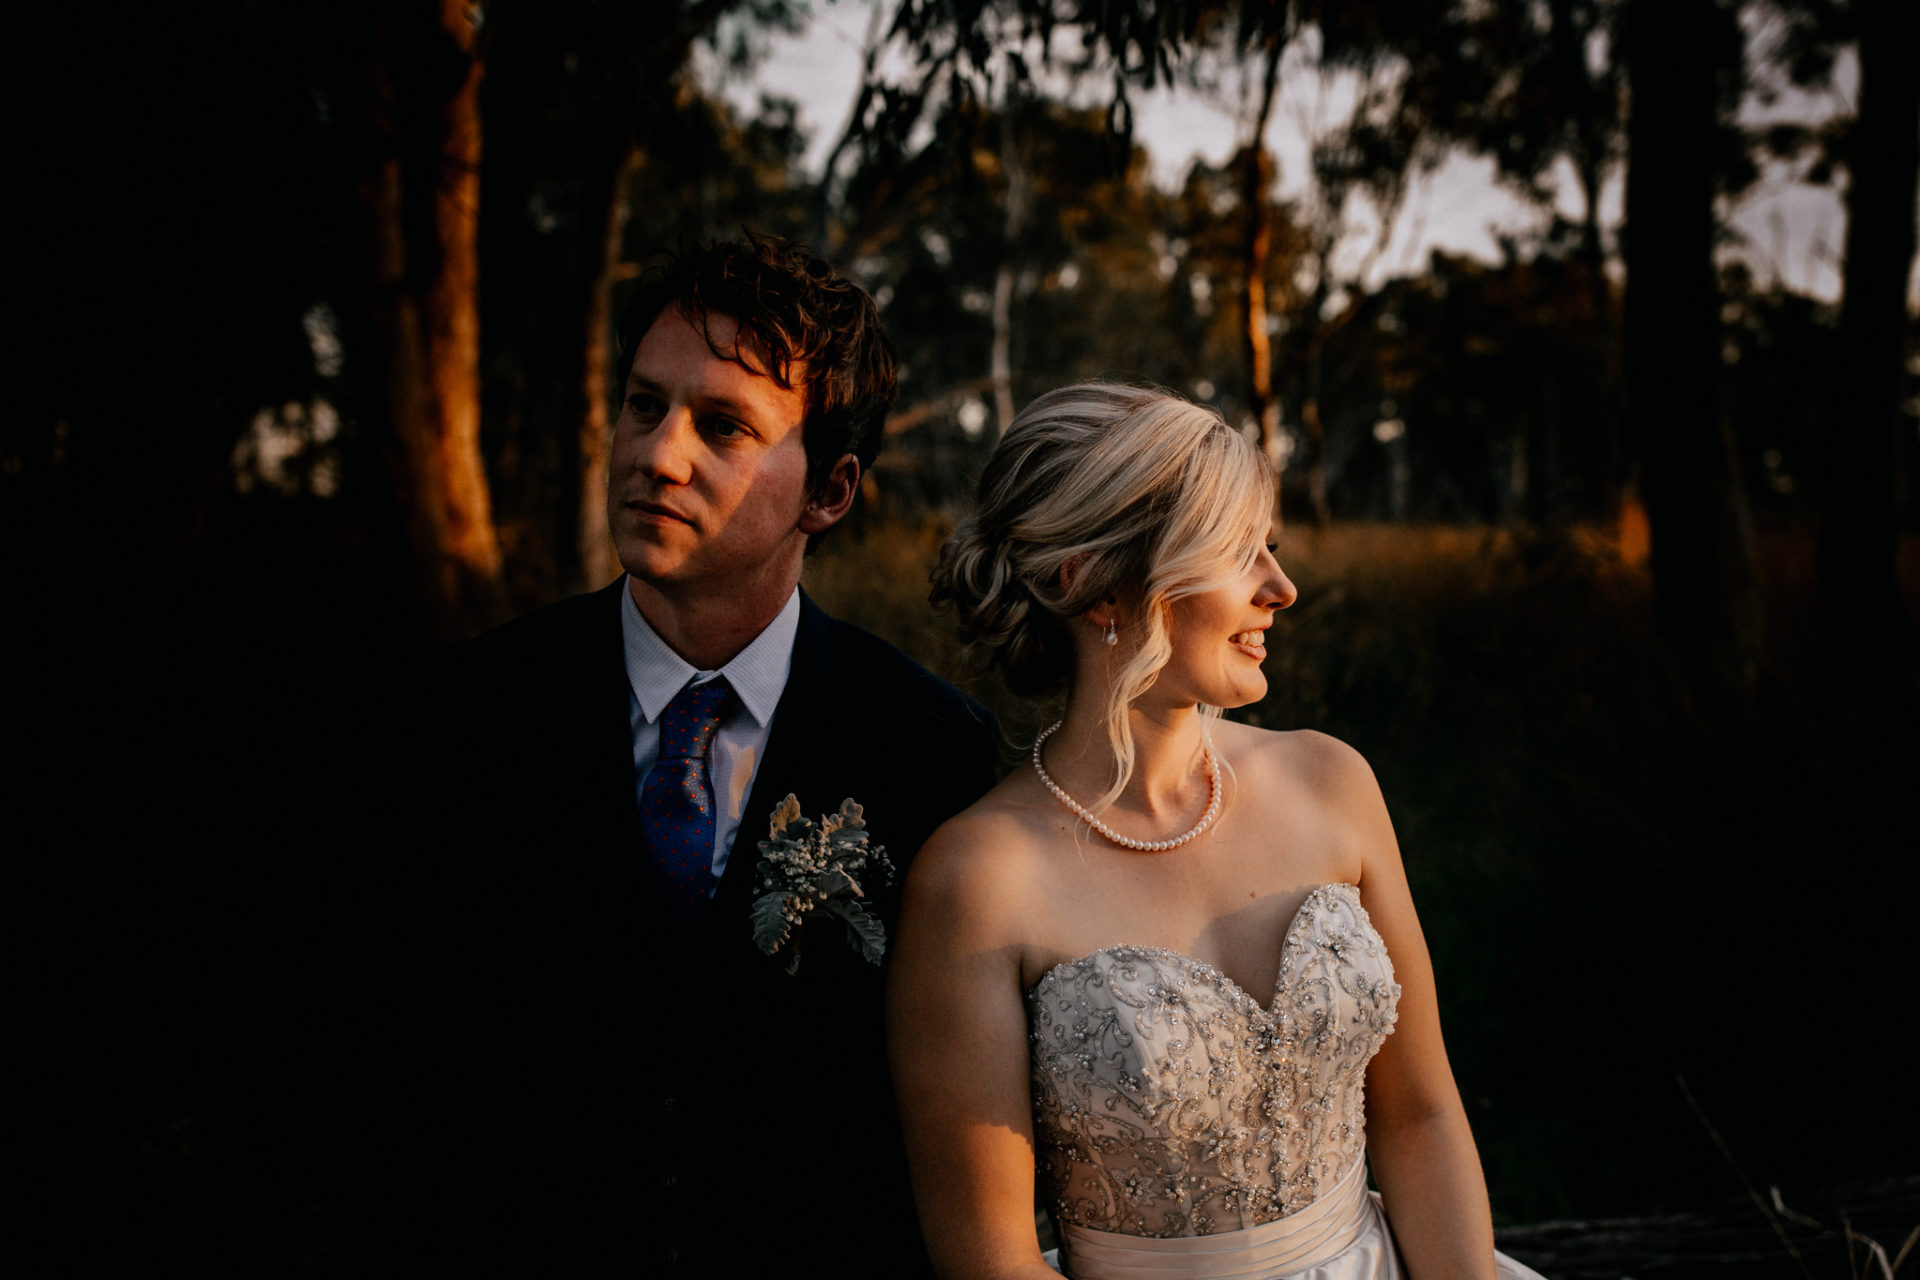 backyard-wedding-australia-melbourne-bride-groom-portrait-creative-sunset